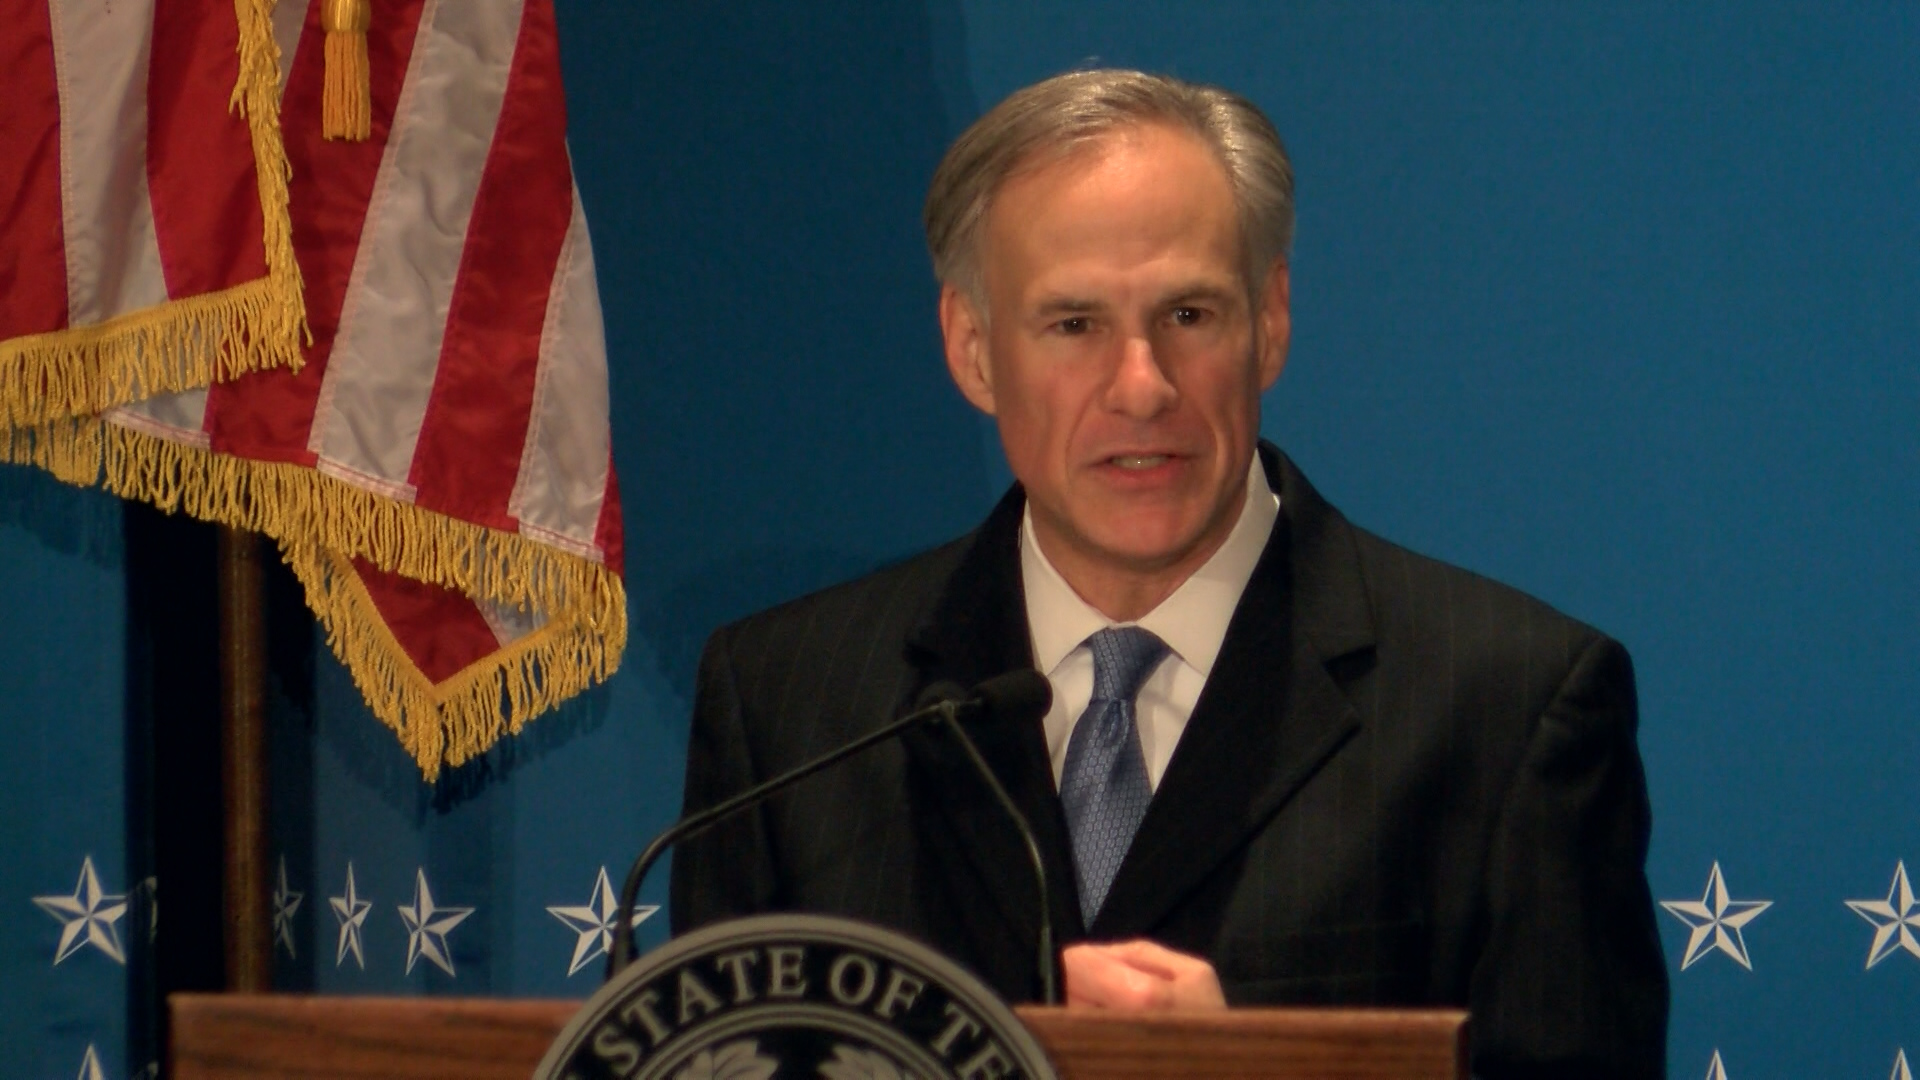 Governor Abbott Web Picture_1452295145470-54787063.jpg